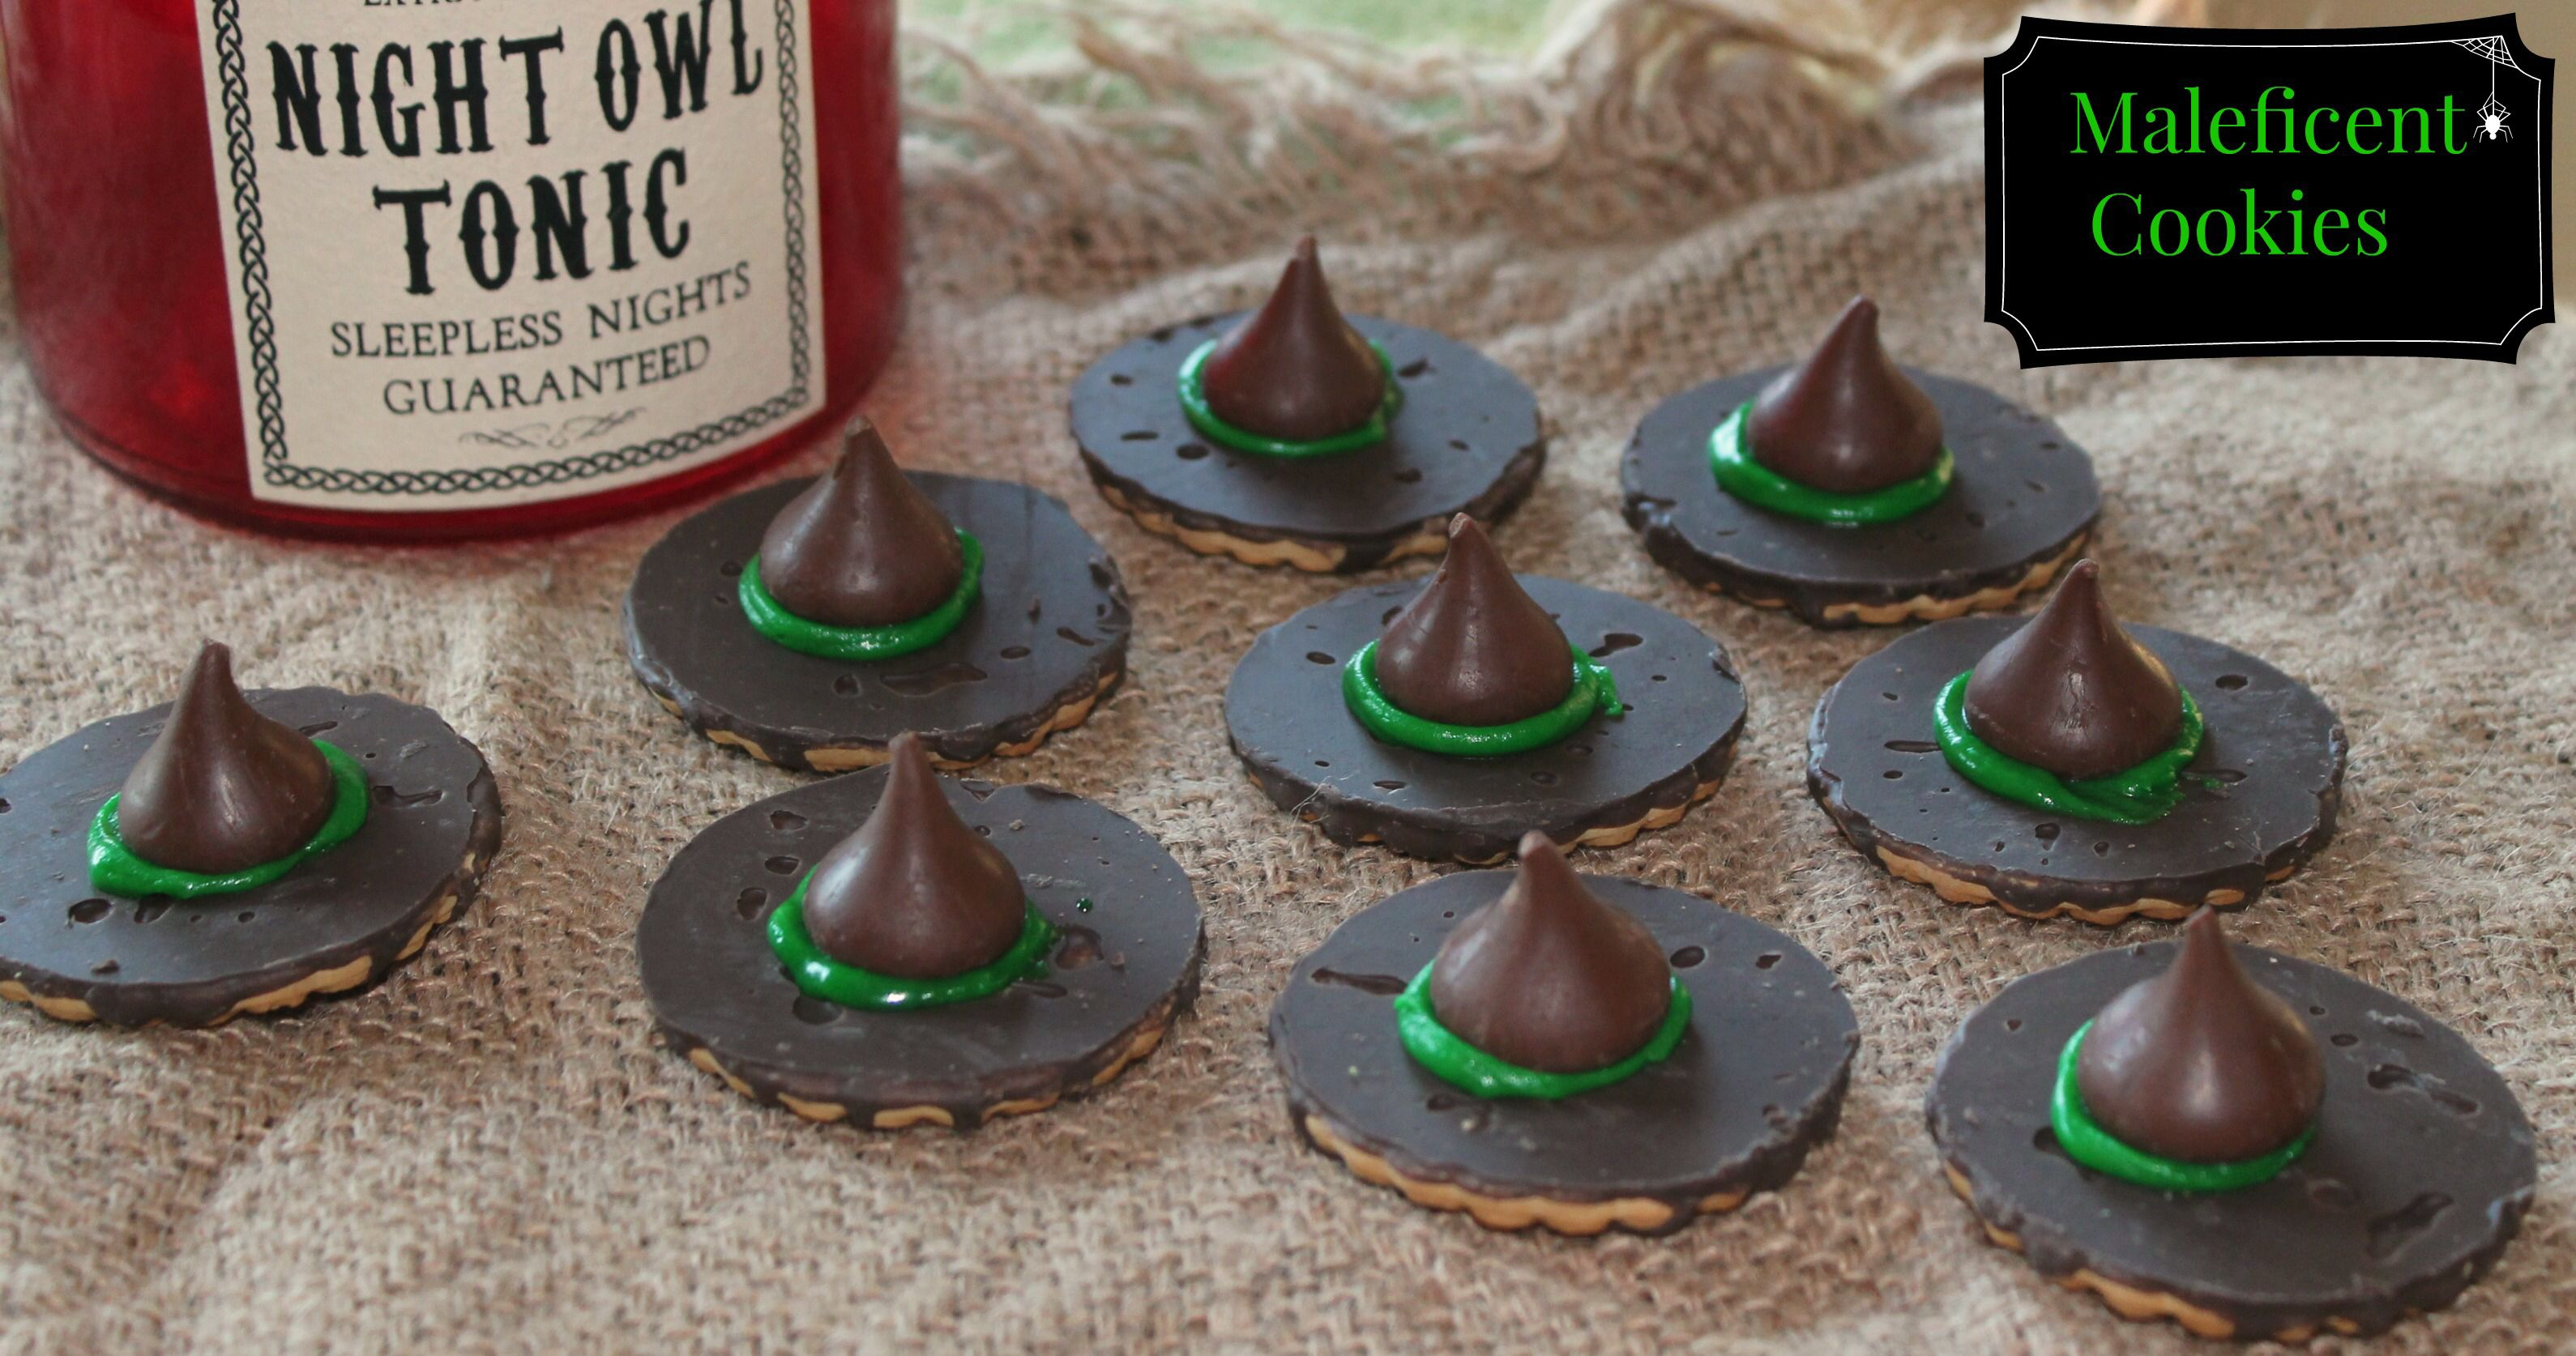 Image from http://www.simplysouthernmom.com/wp-content/uploads/2014/11/Maleficent-Cookies-.jpg.